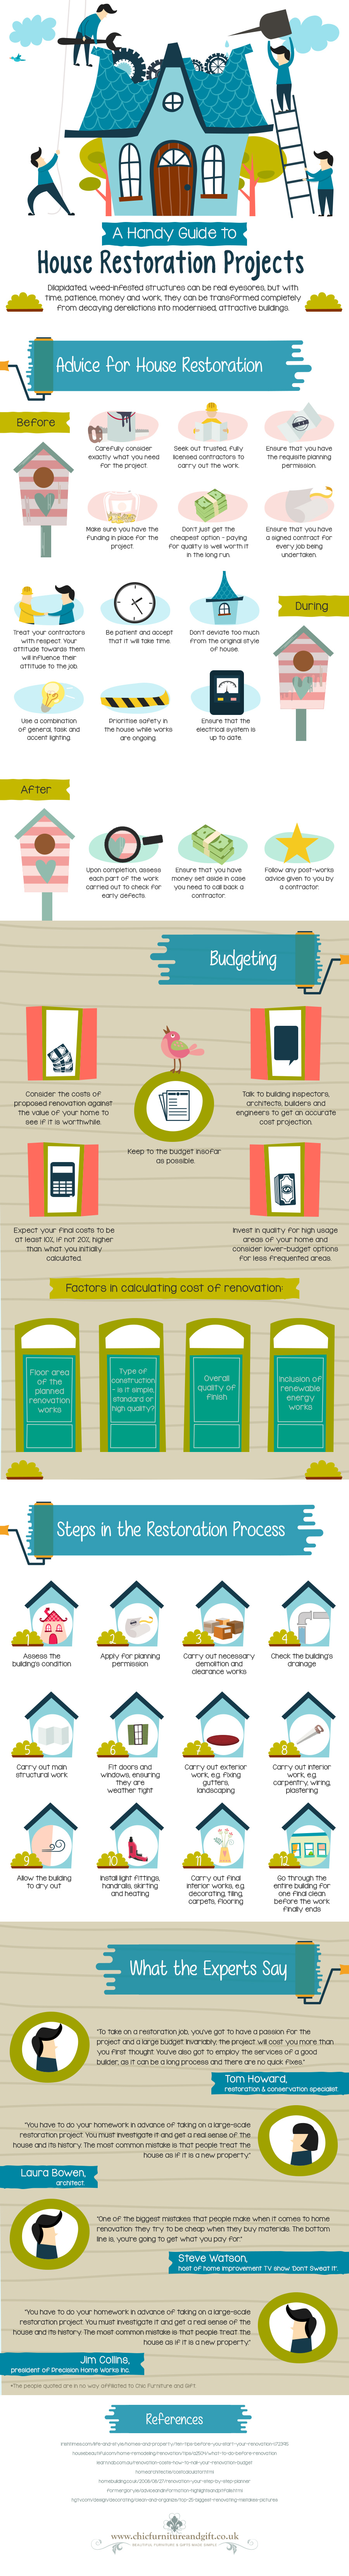 A Handy Guide to House Restoration Projects – Infographic